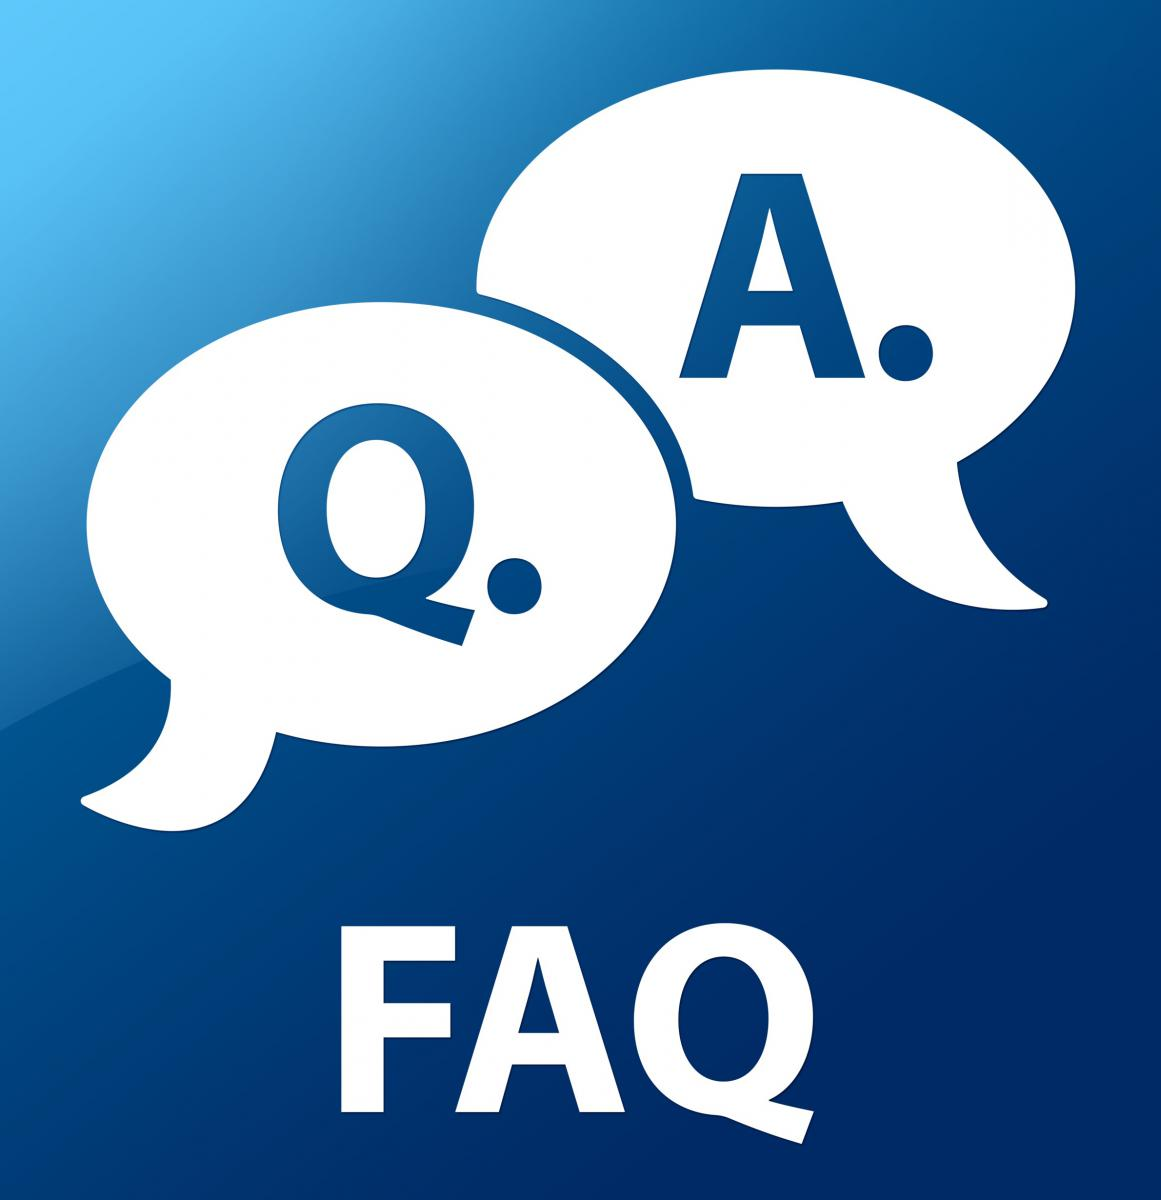 NIH Director's Transformative Research Award FAQs